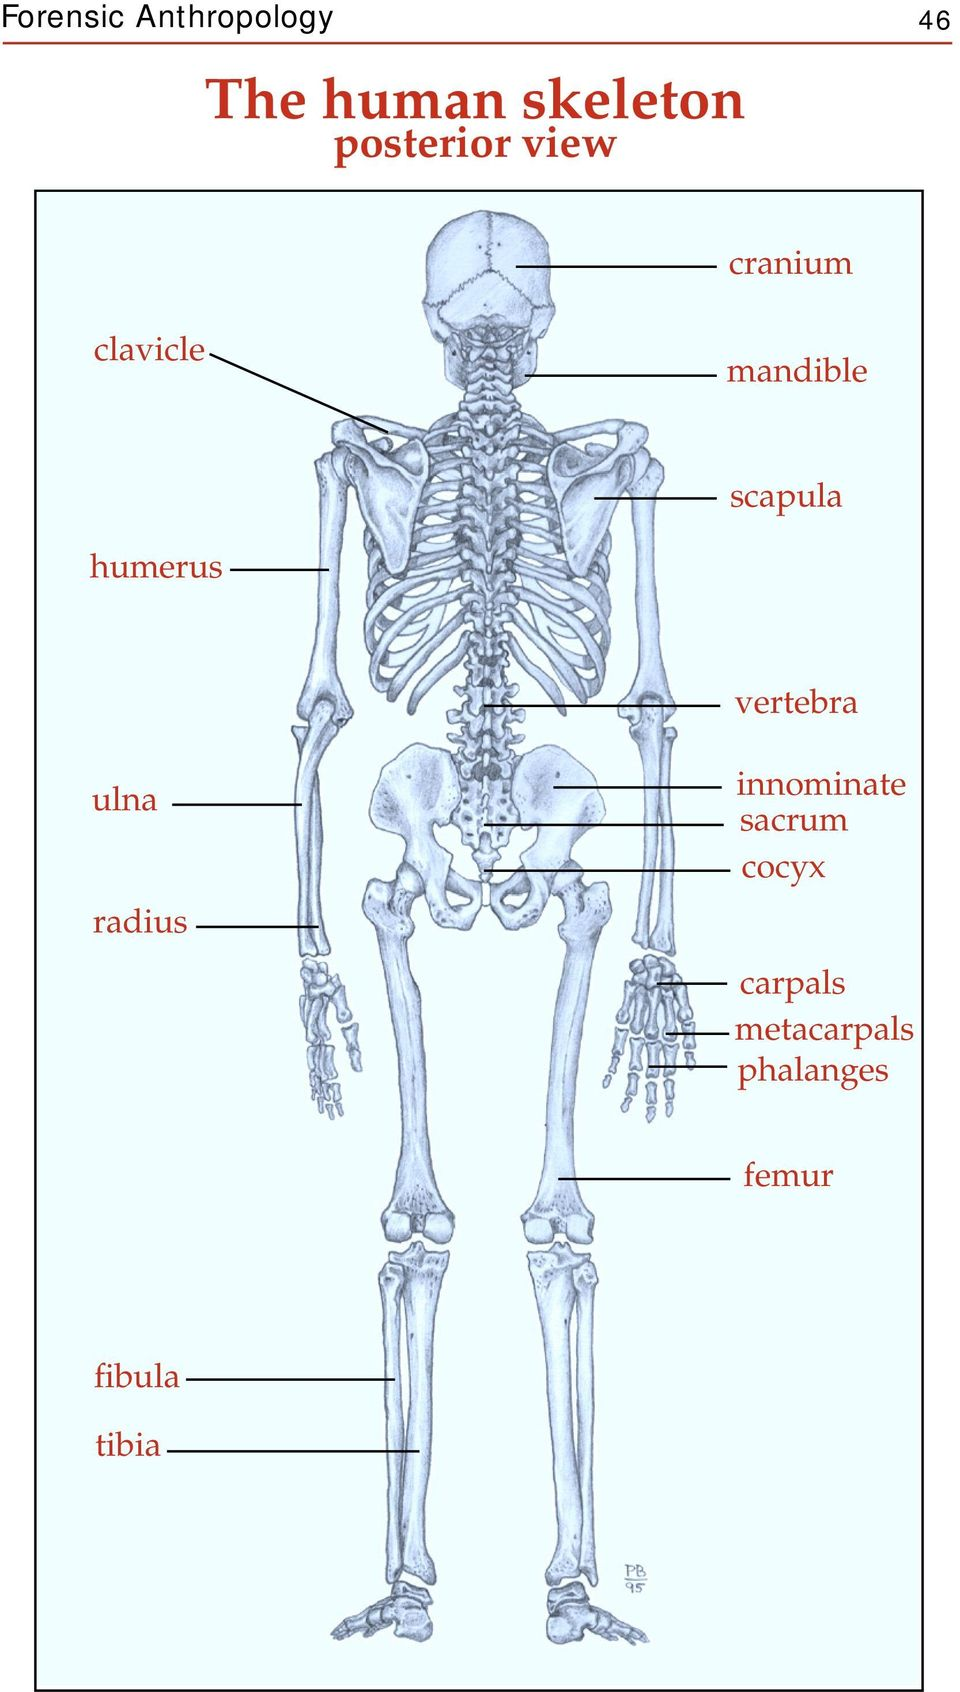 The Human Skeleton Anterior View Pdf